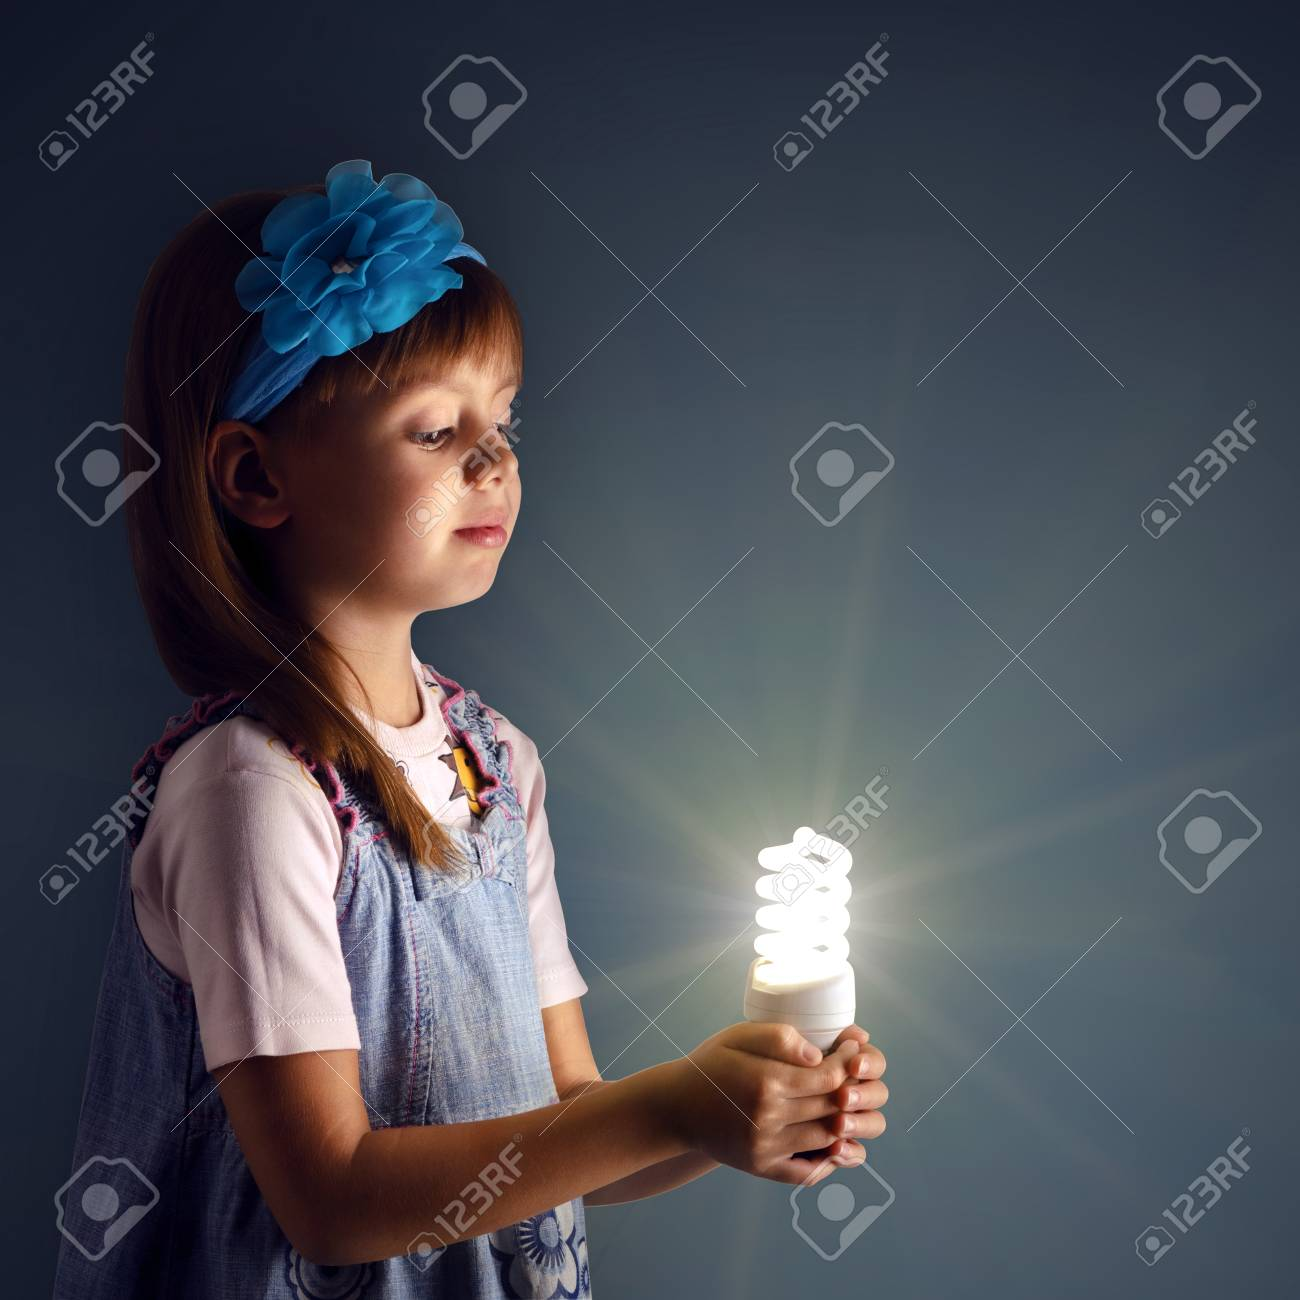 Little Girl With A Lit Lamp In Hand Stock Photo, Picture And ... for Little Girl With Lamp  545xkb